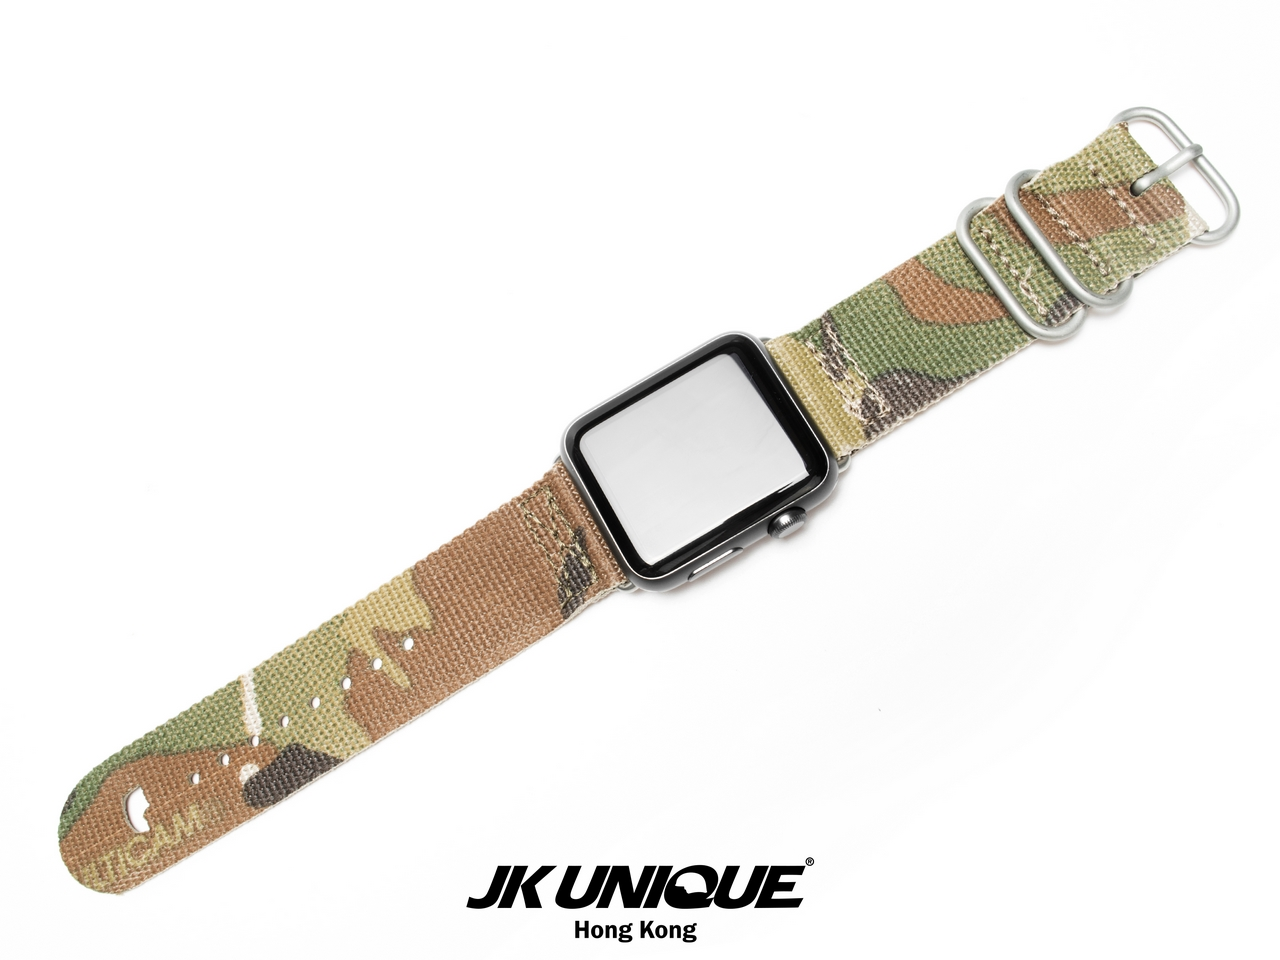 JK-UNIQUE-CAMO-NATO-Apple-Watch-Strap-42mm-SV-Multicam-3 (1280).jpg